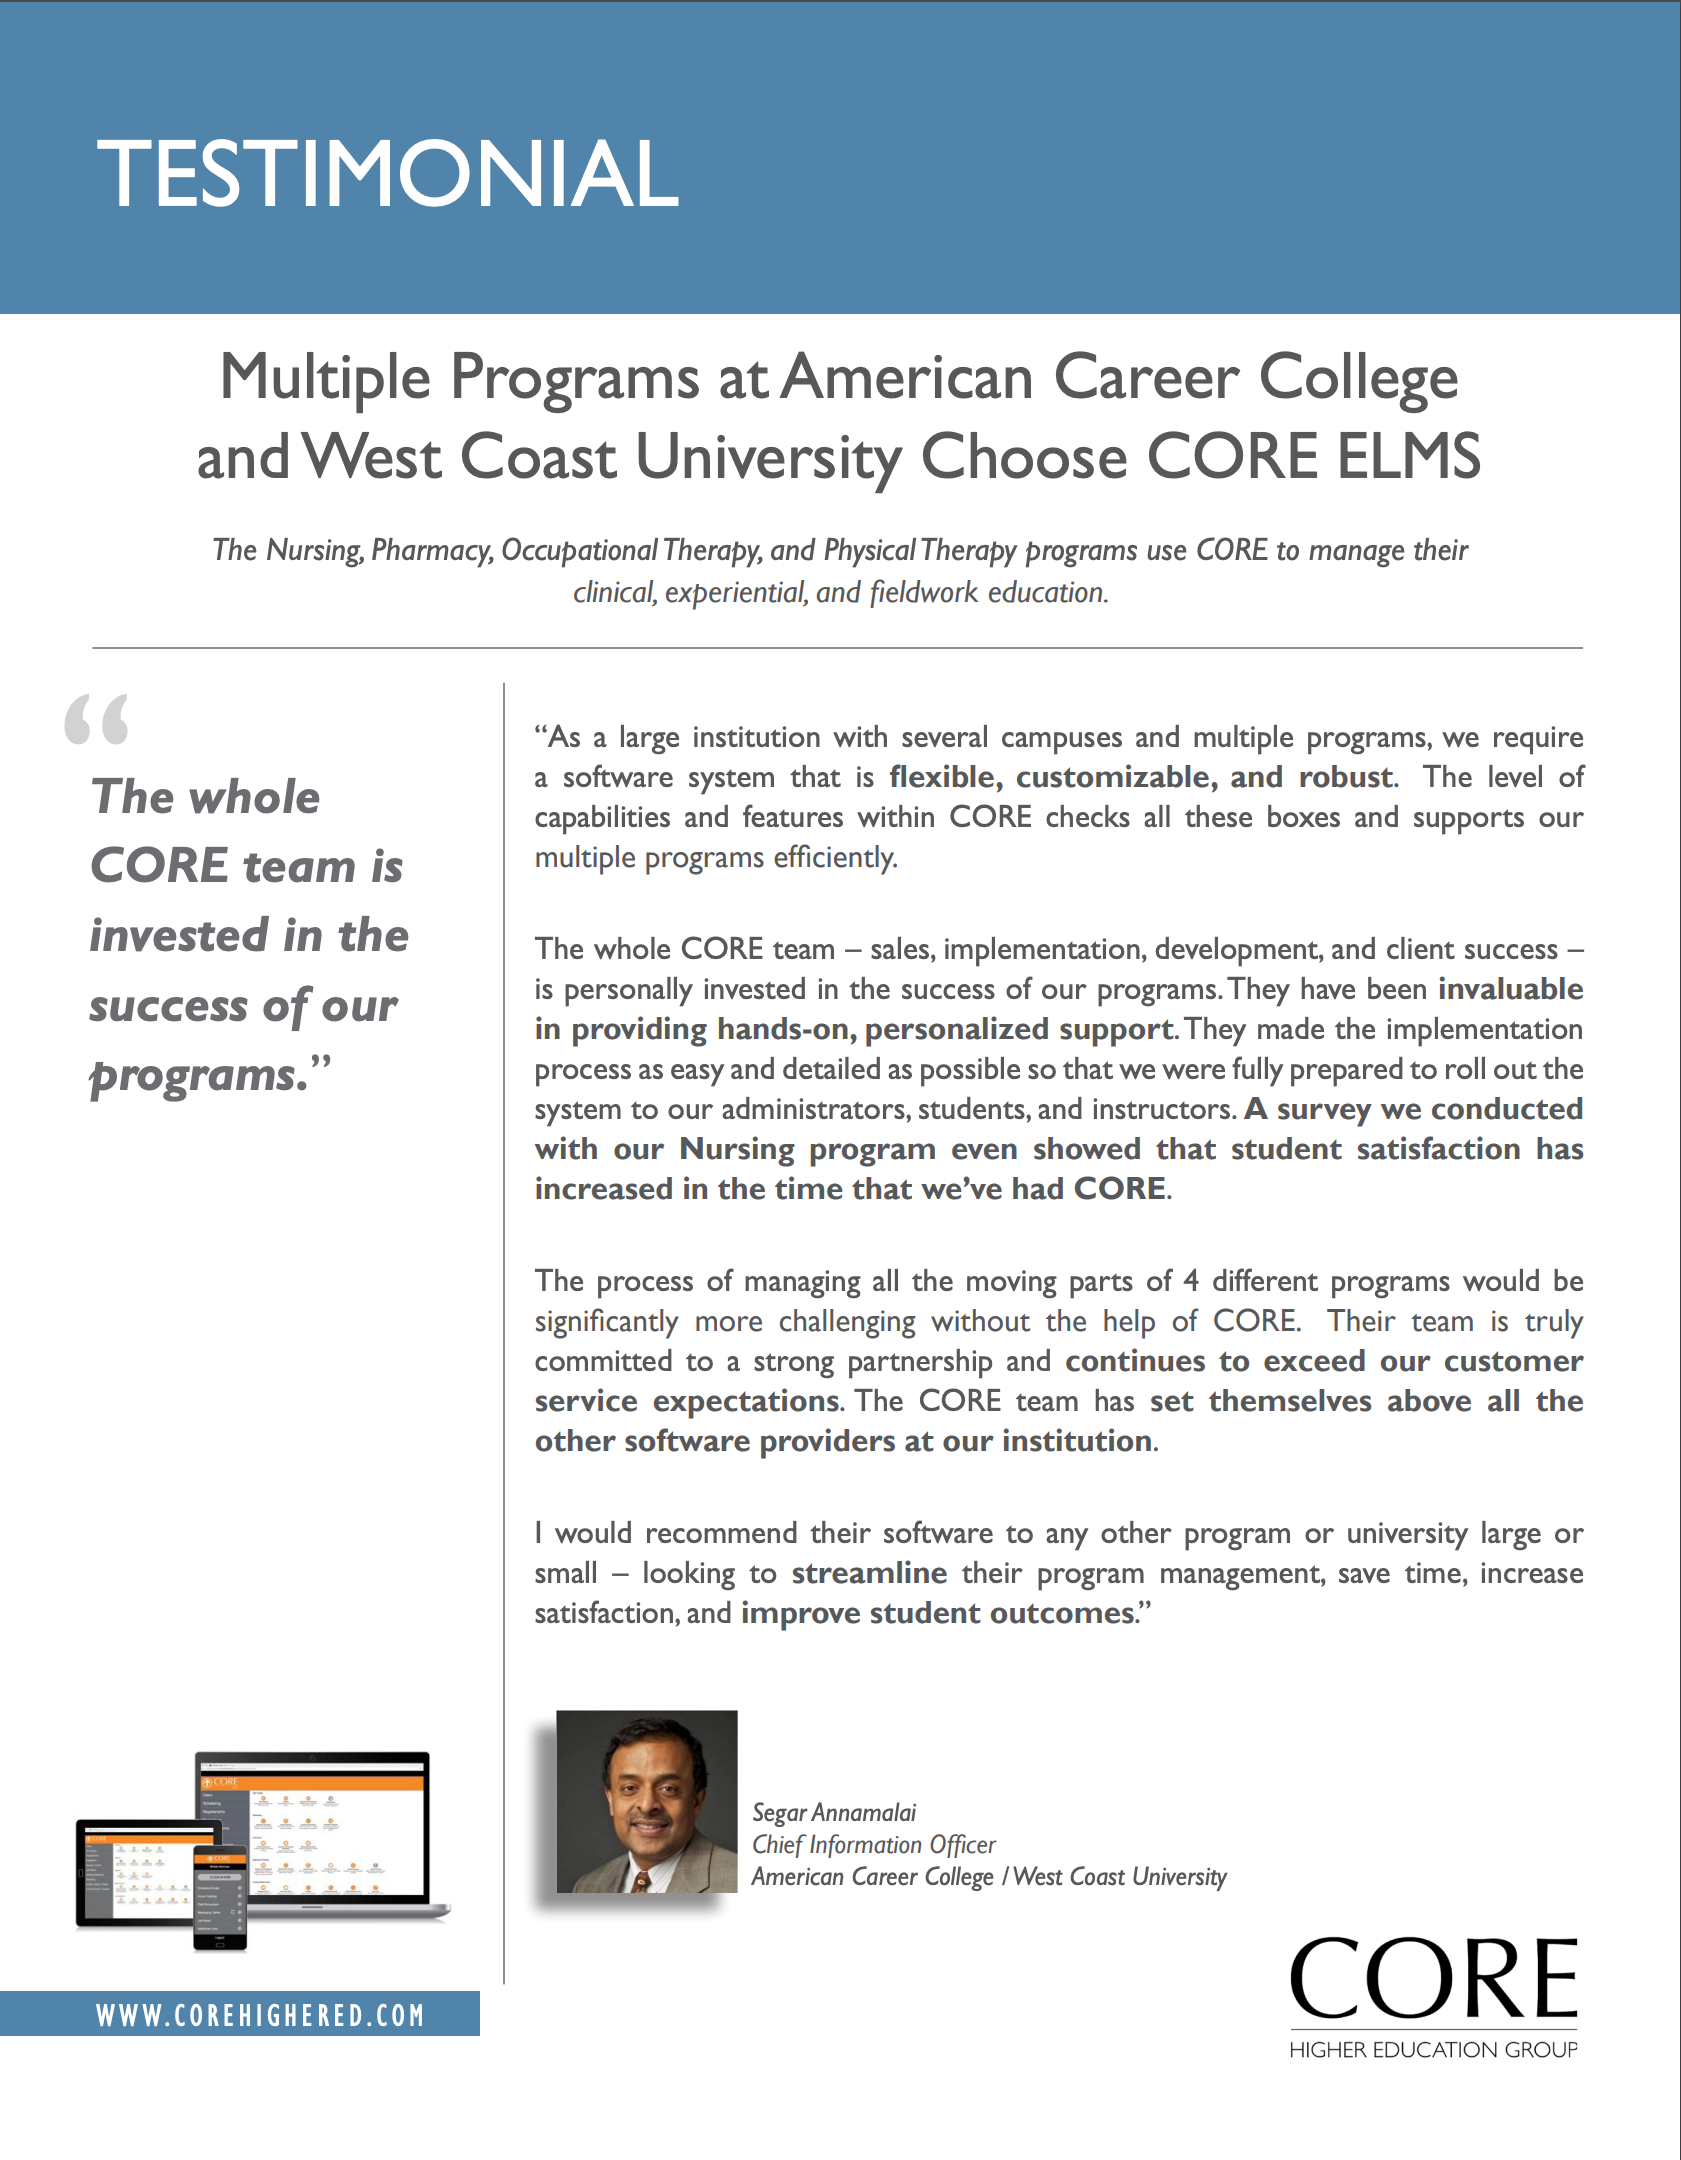 American Career College Testimonial